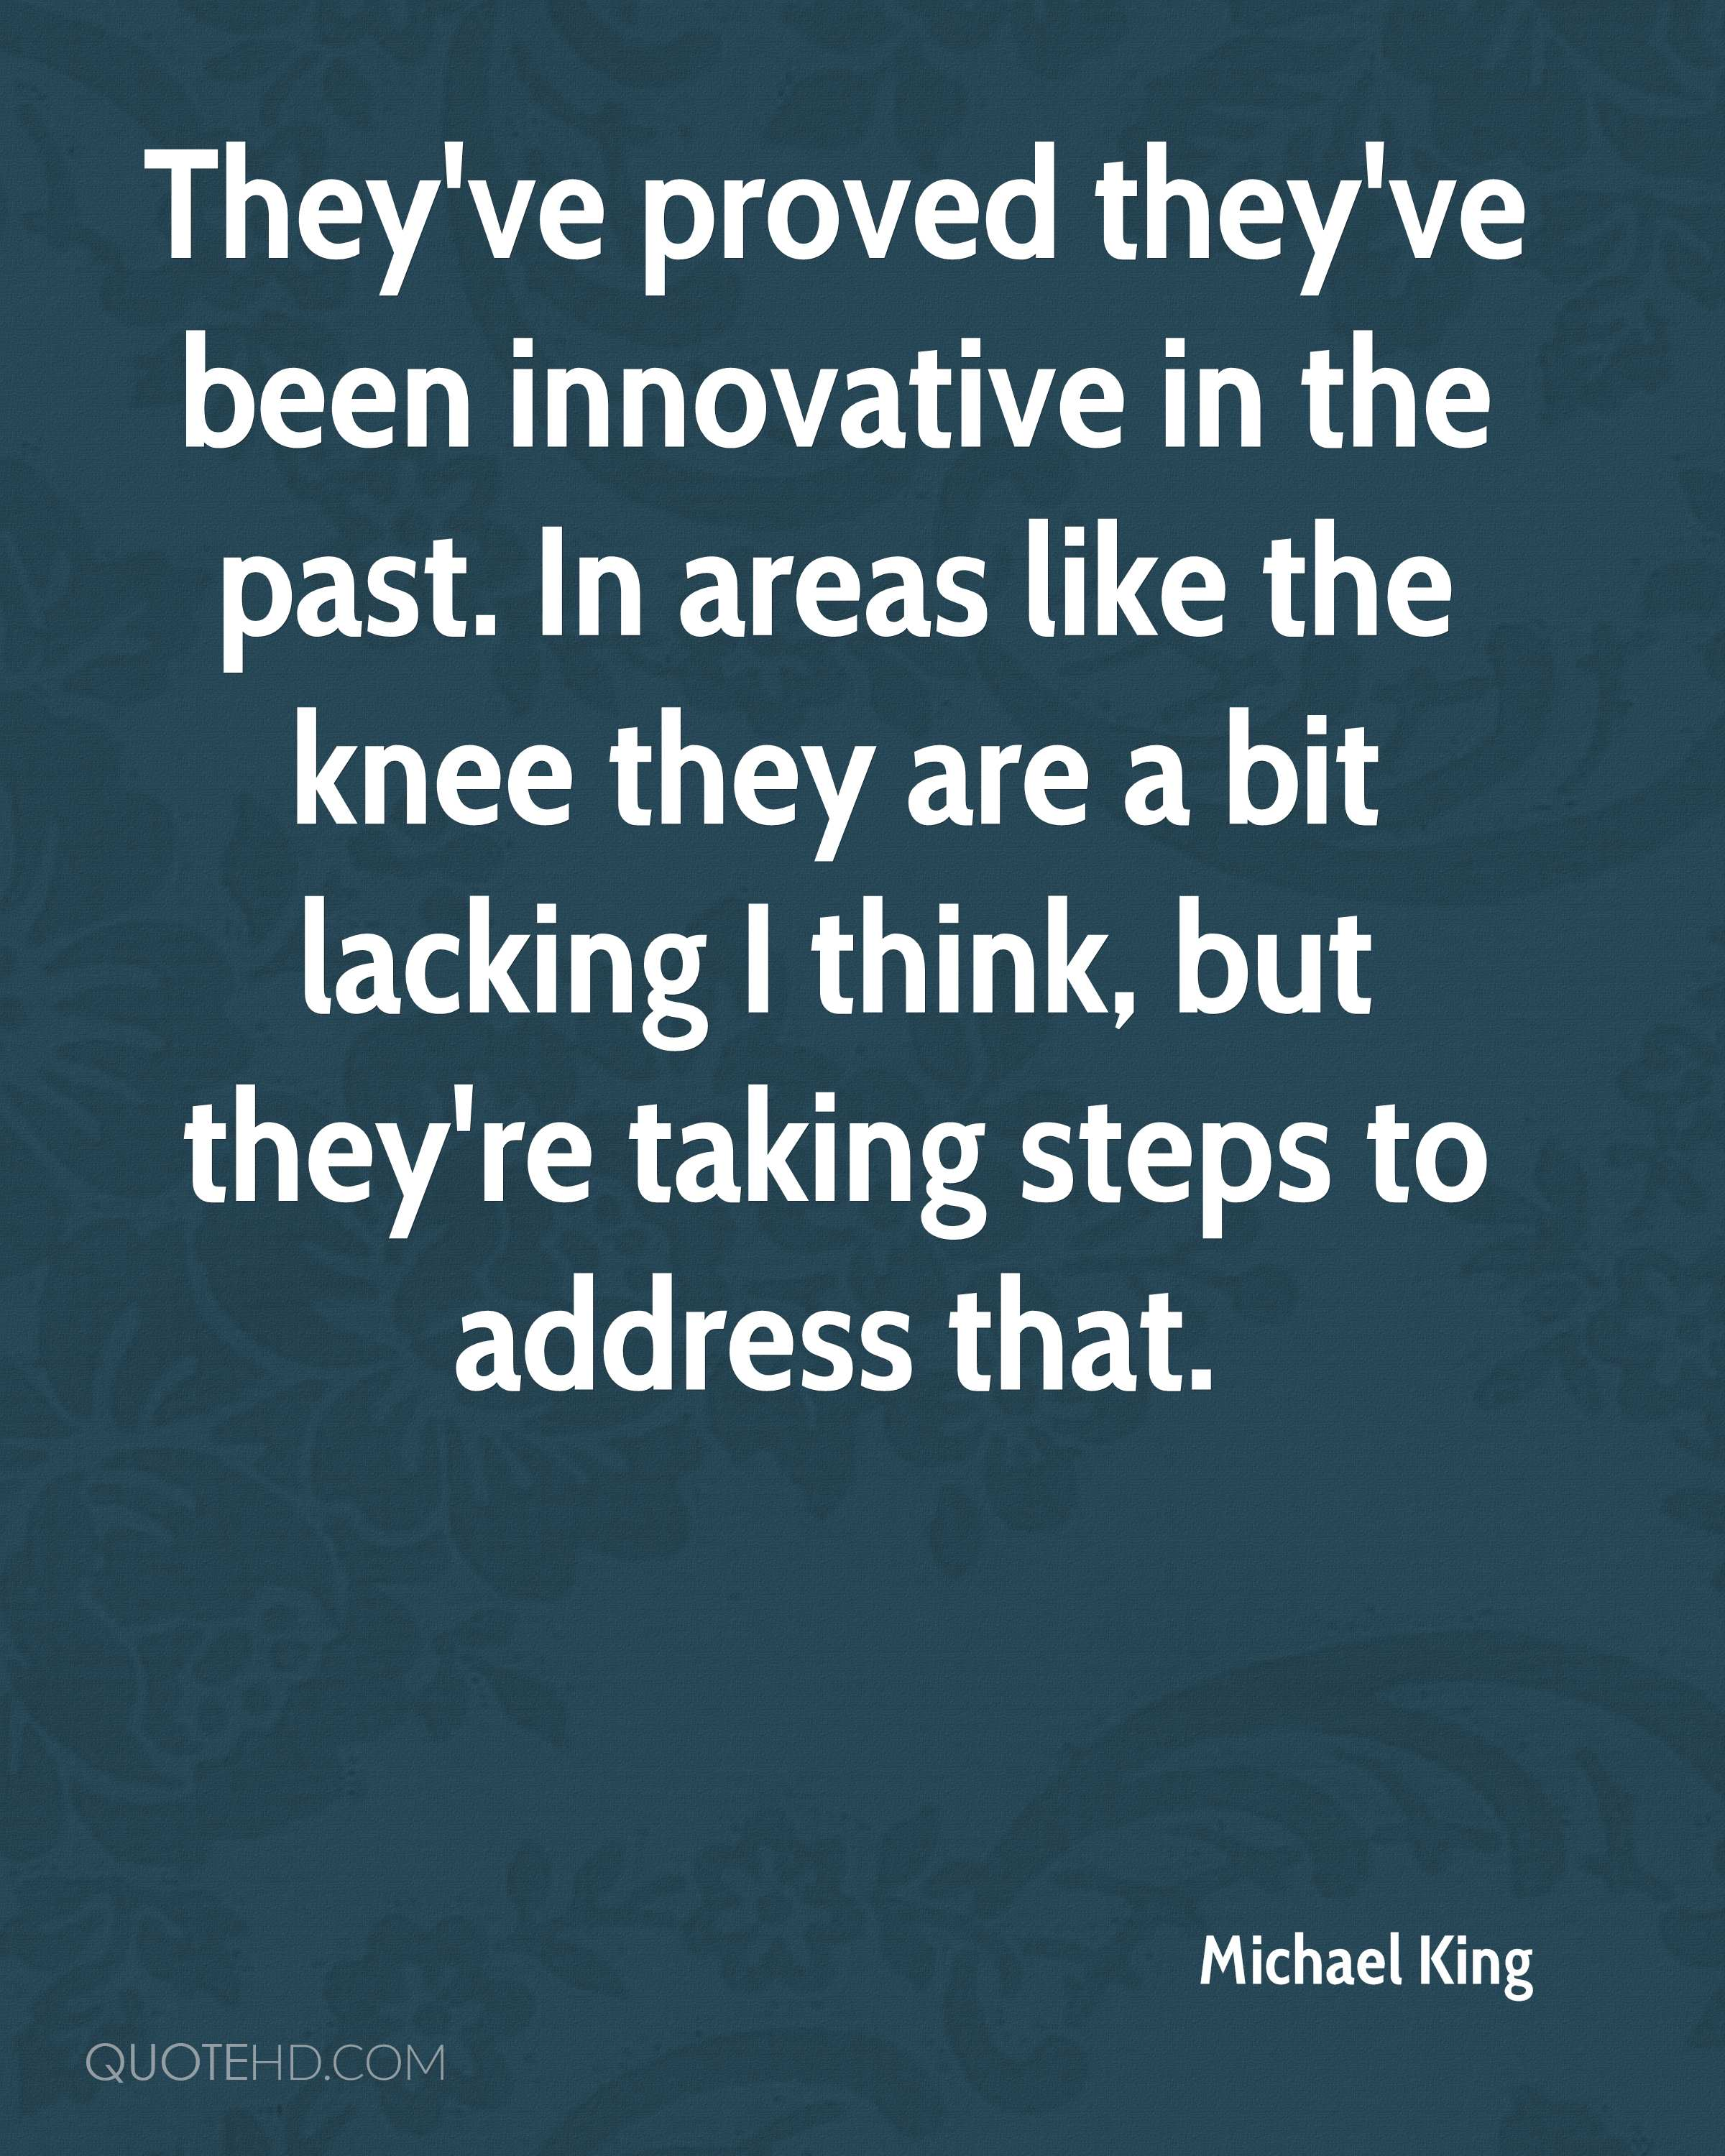 They've proved they've been innovative in the past. In areas like the knee they are a bit lacking I think, but they're taking steps to address that.